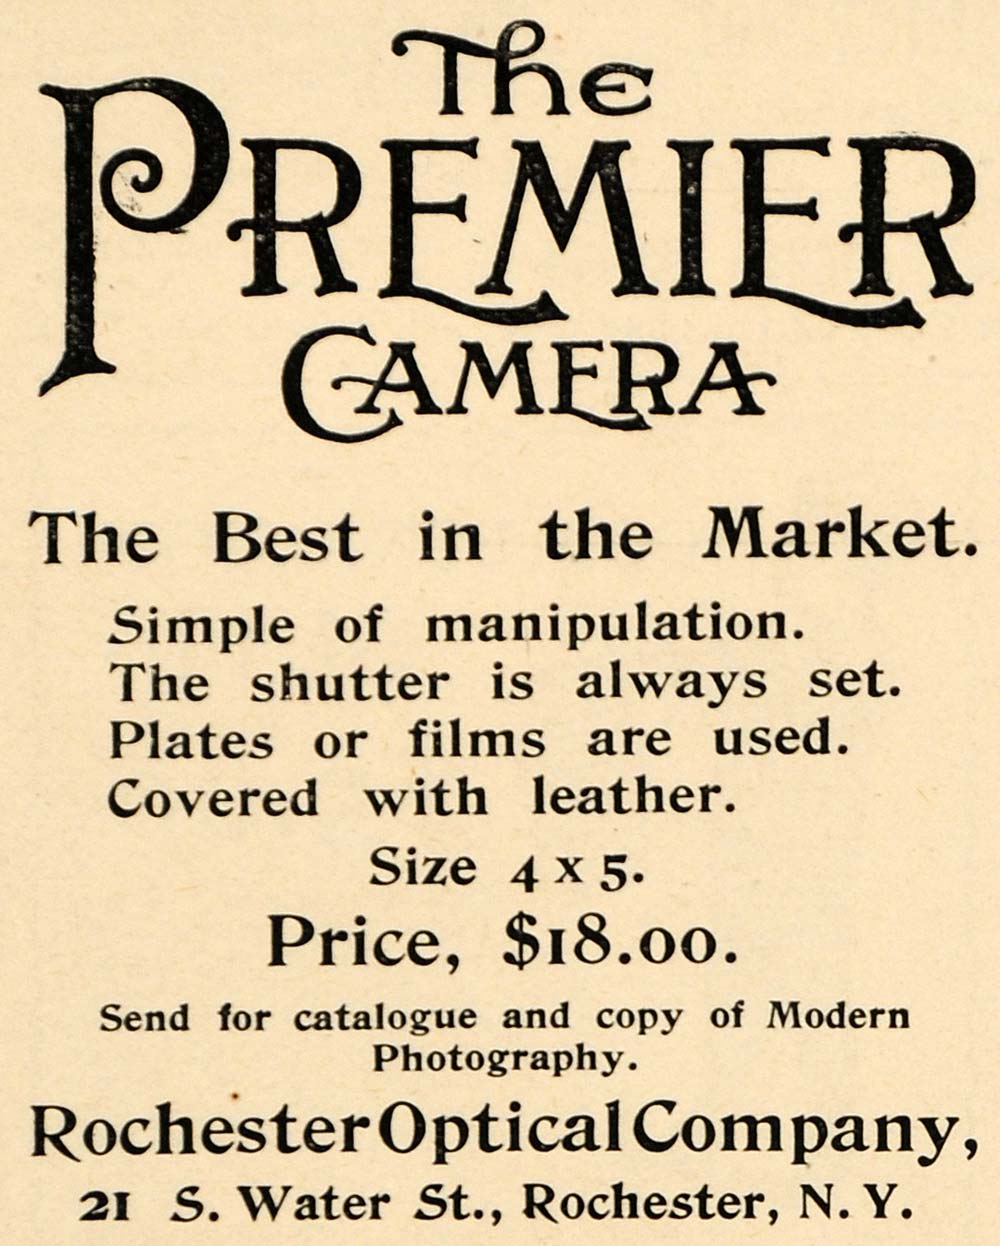 1892 Ad Rochester Optical Premier Camera Pricing NY - ORIGINAL ADVERTISING LHJ4